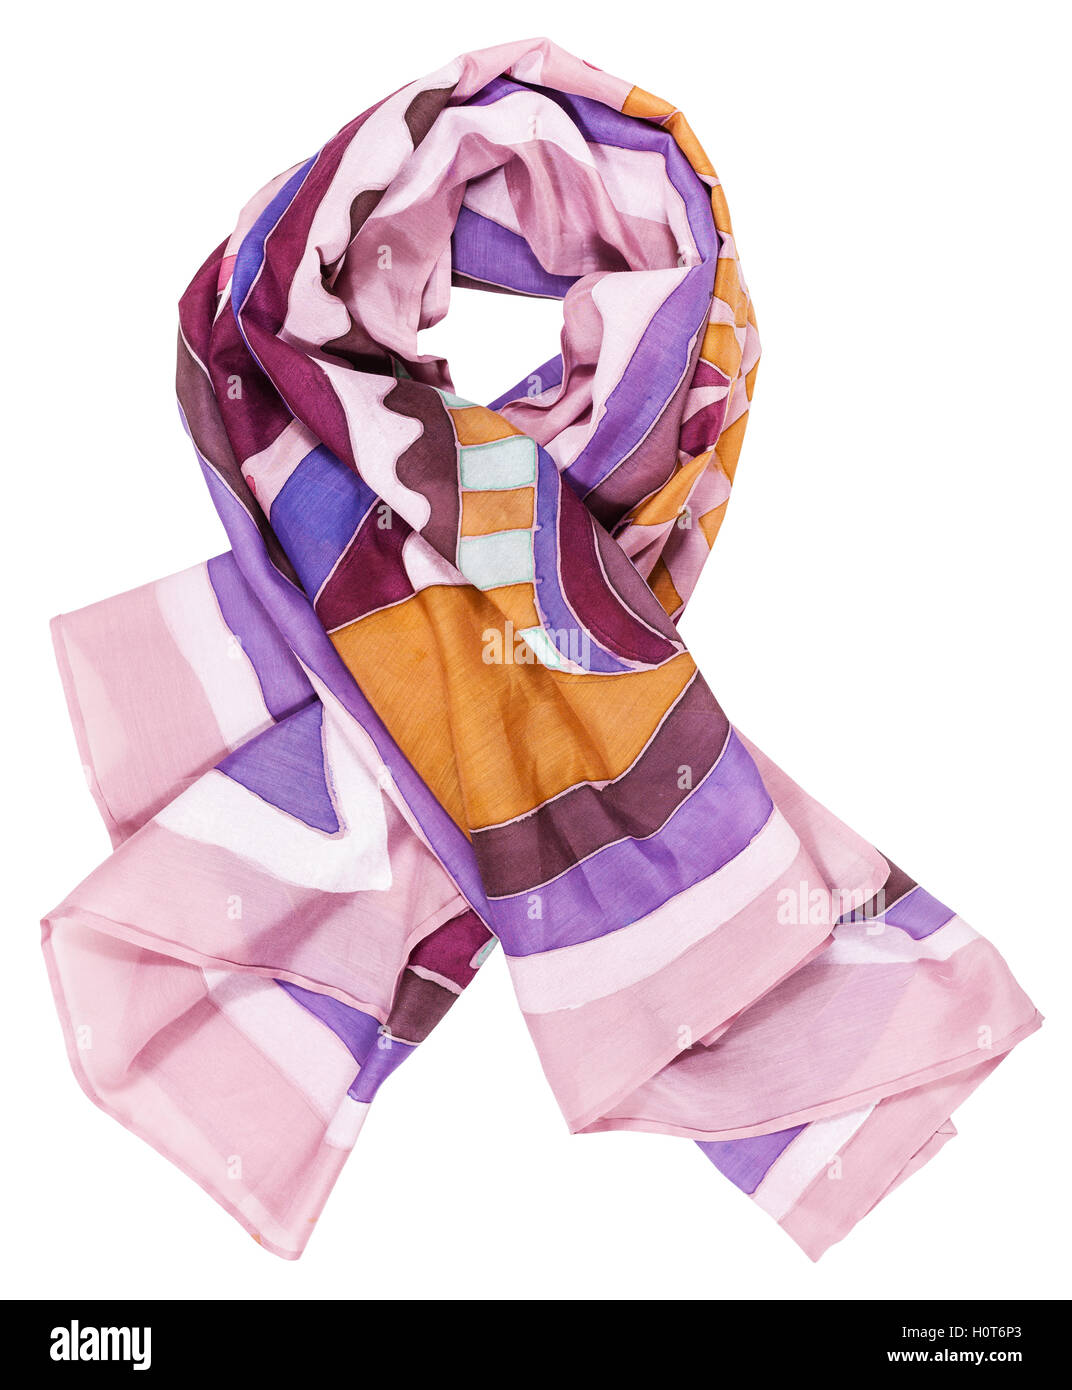 knotted scarf from pink painted silk batik isolated on white background - Stock Image